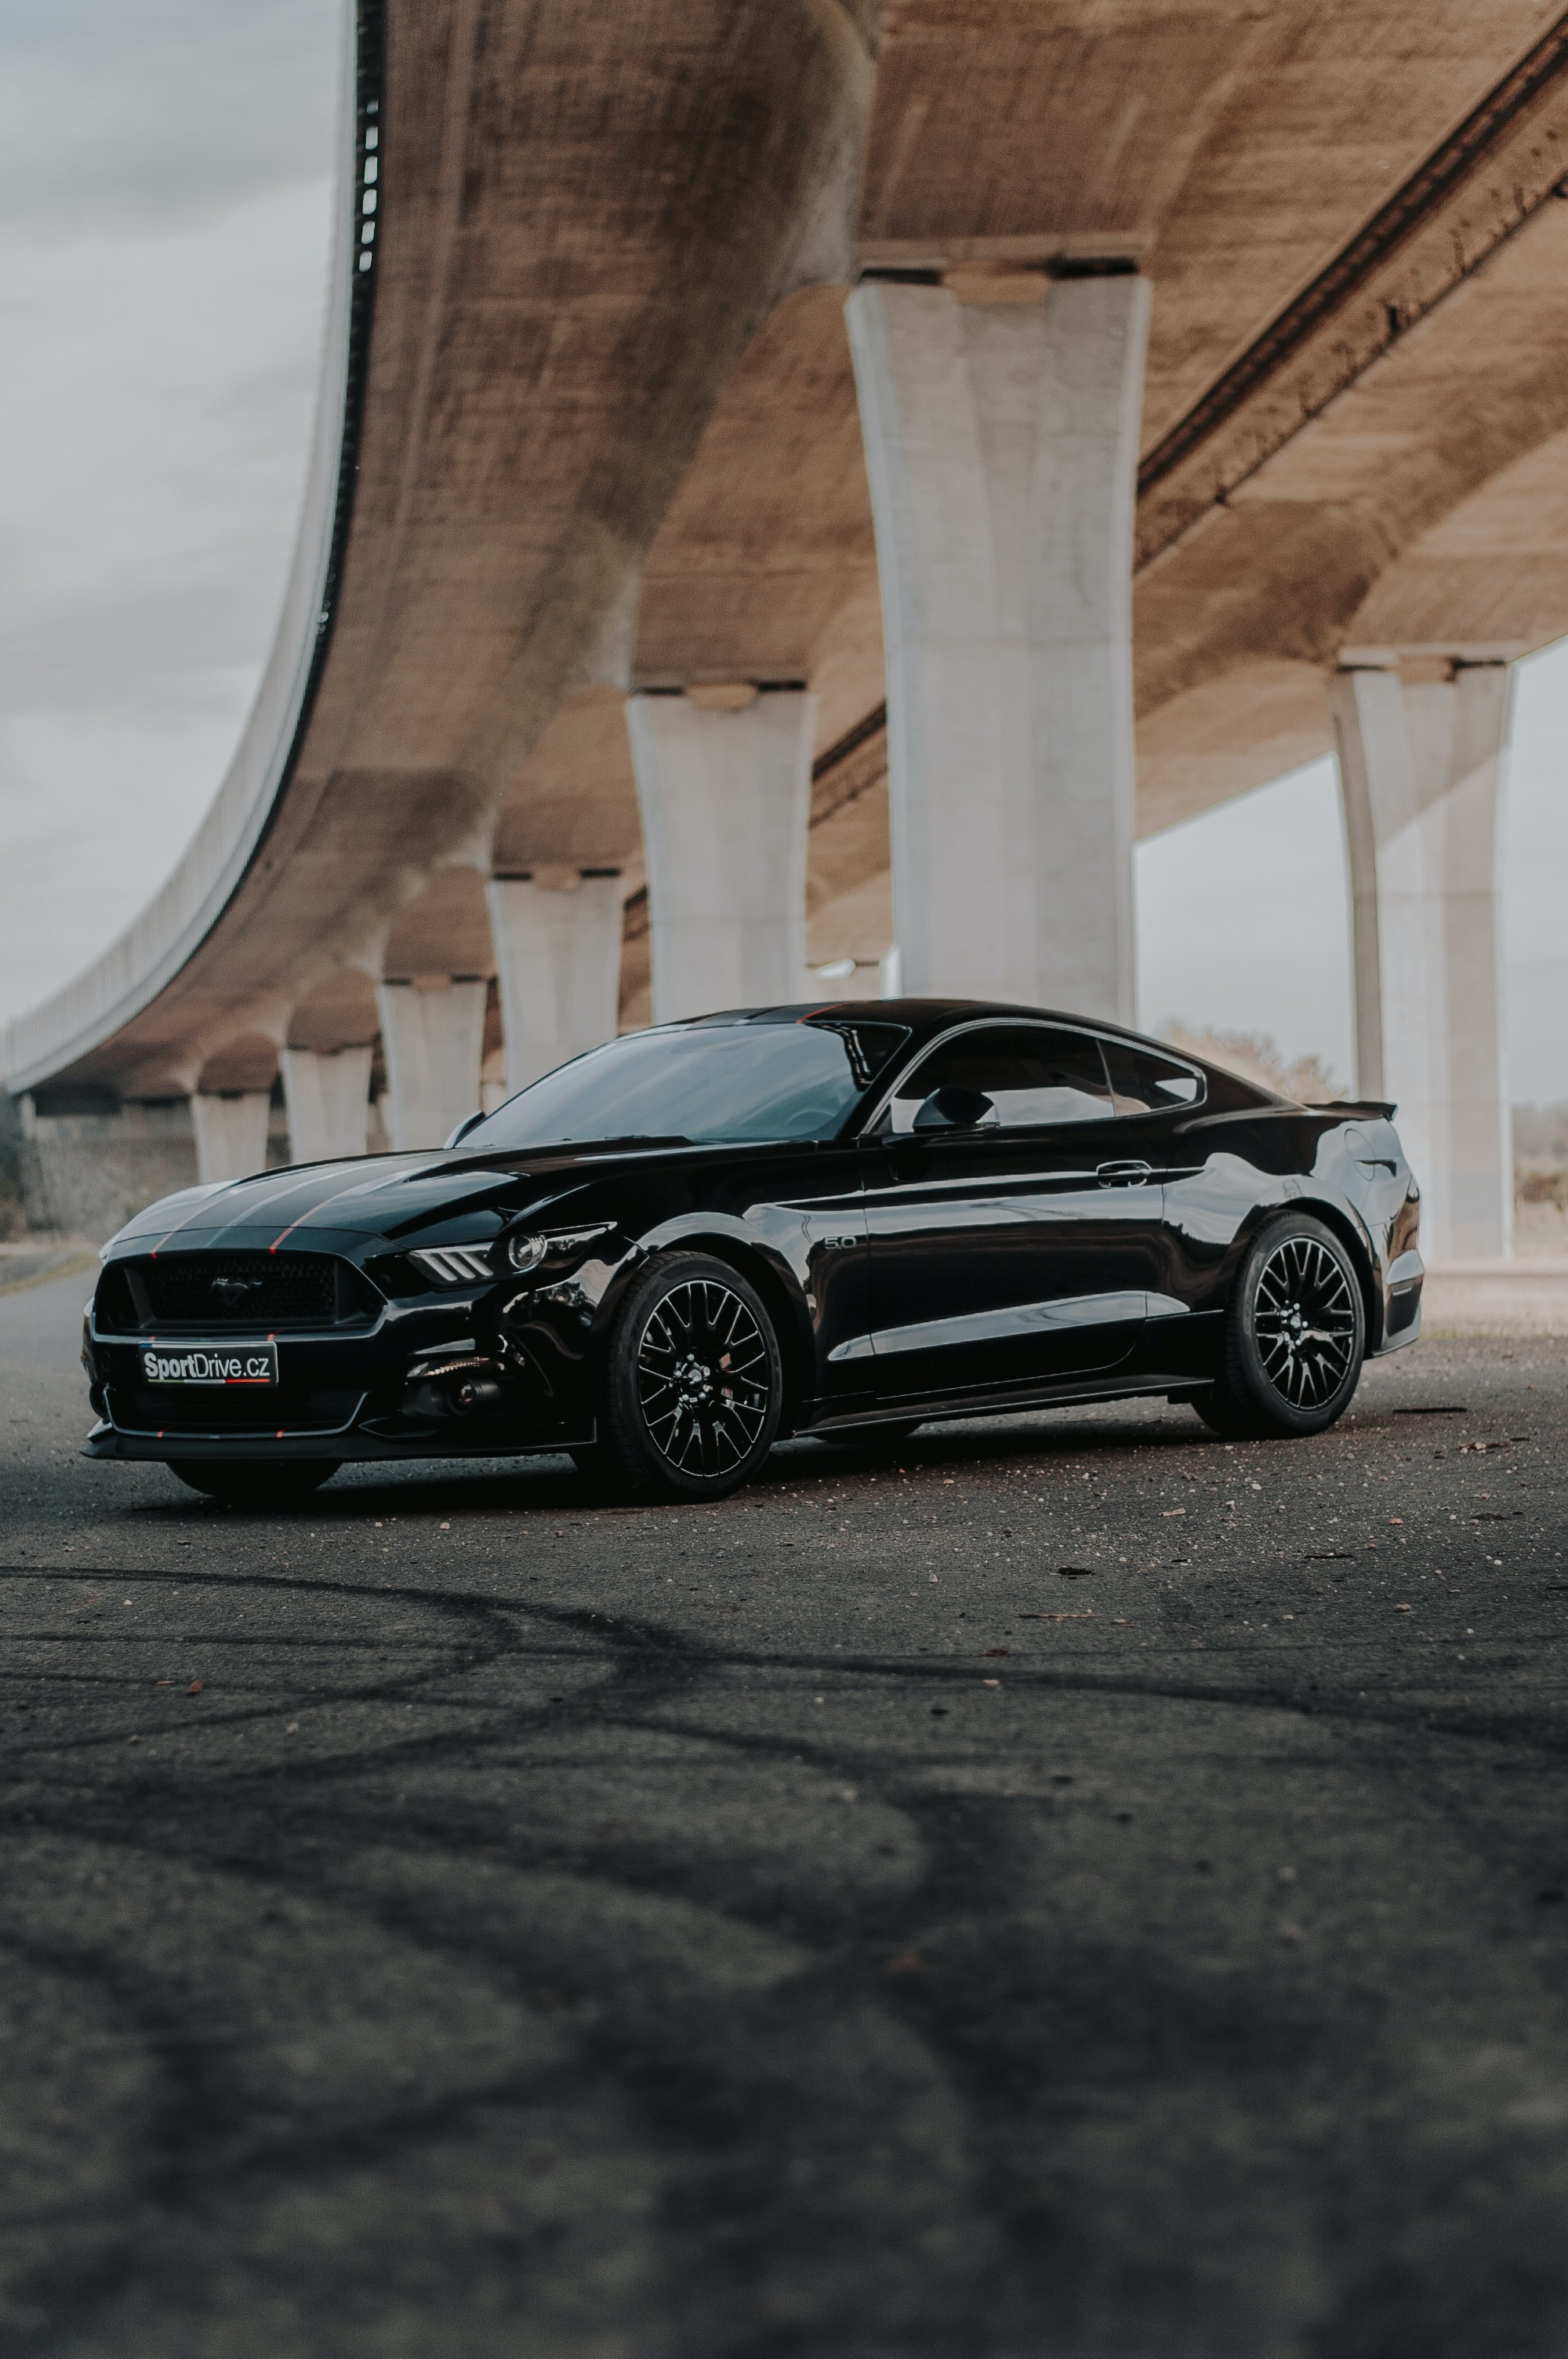 Black Car Pictures Hd Download Free Images Stock Photos On Unsplash